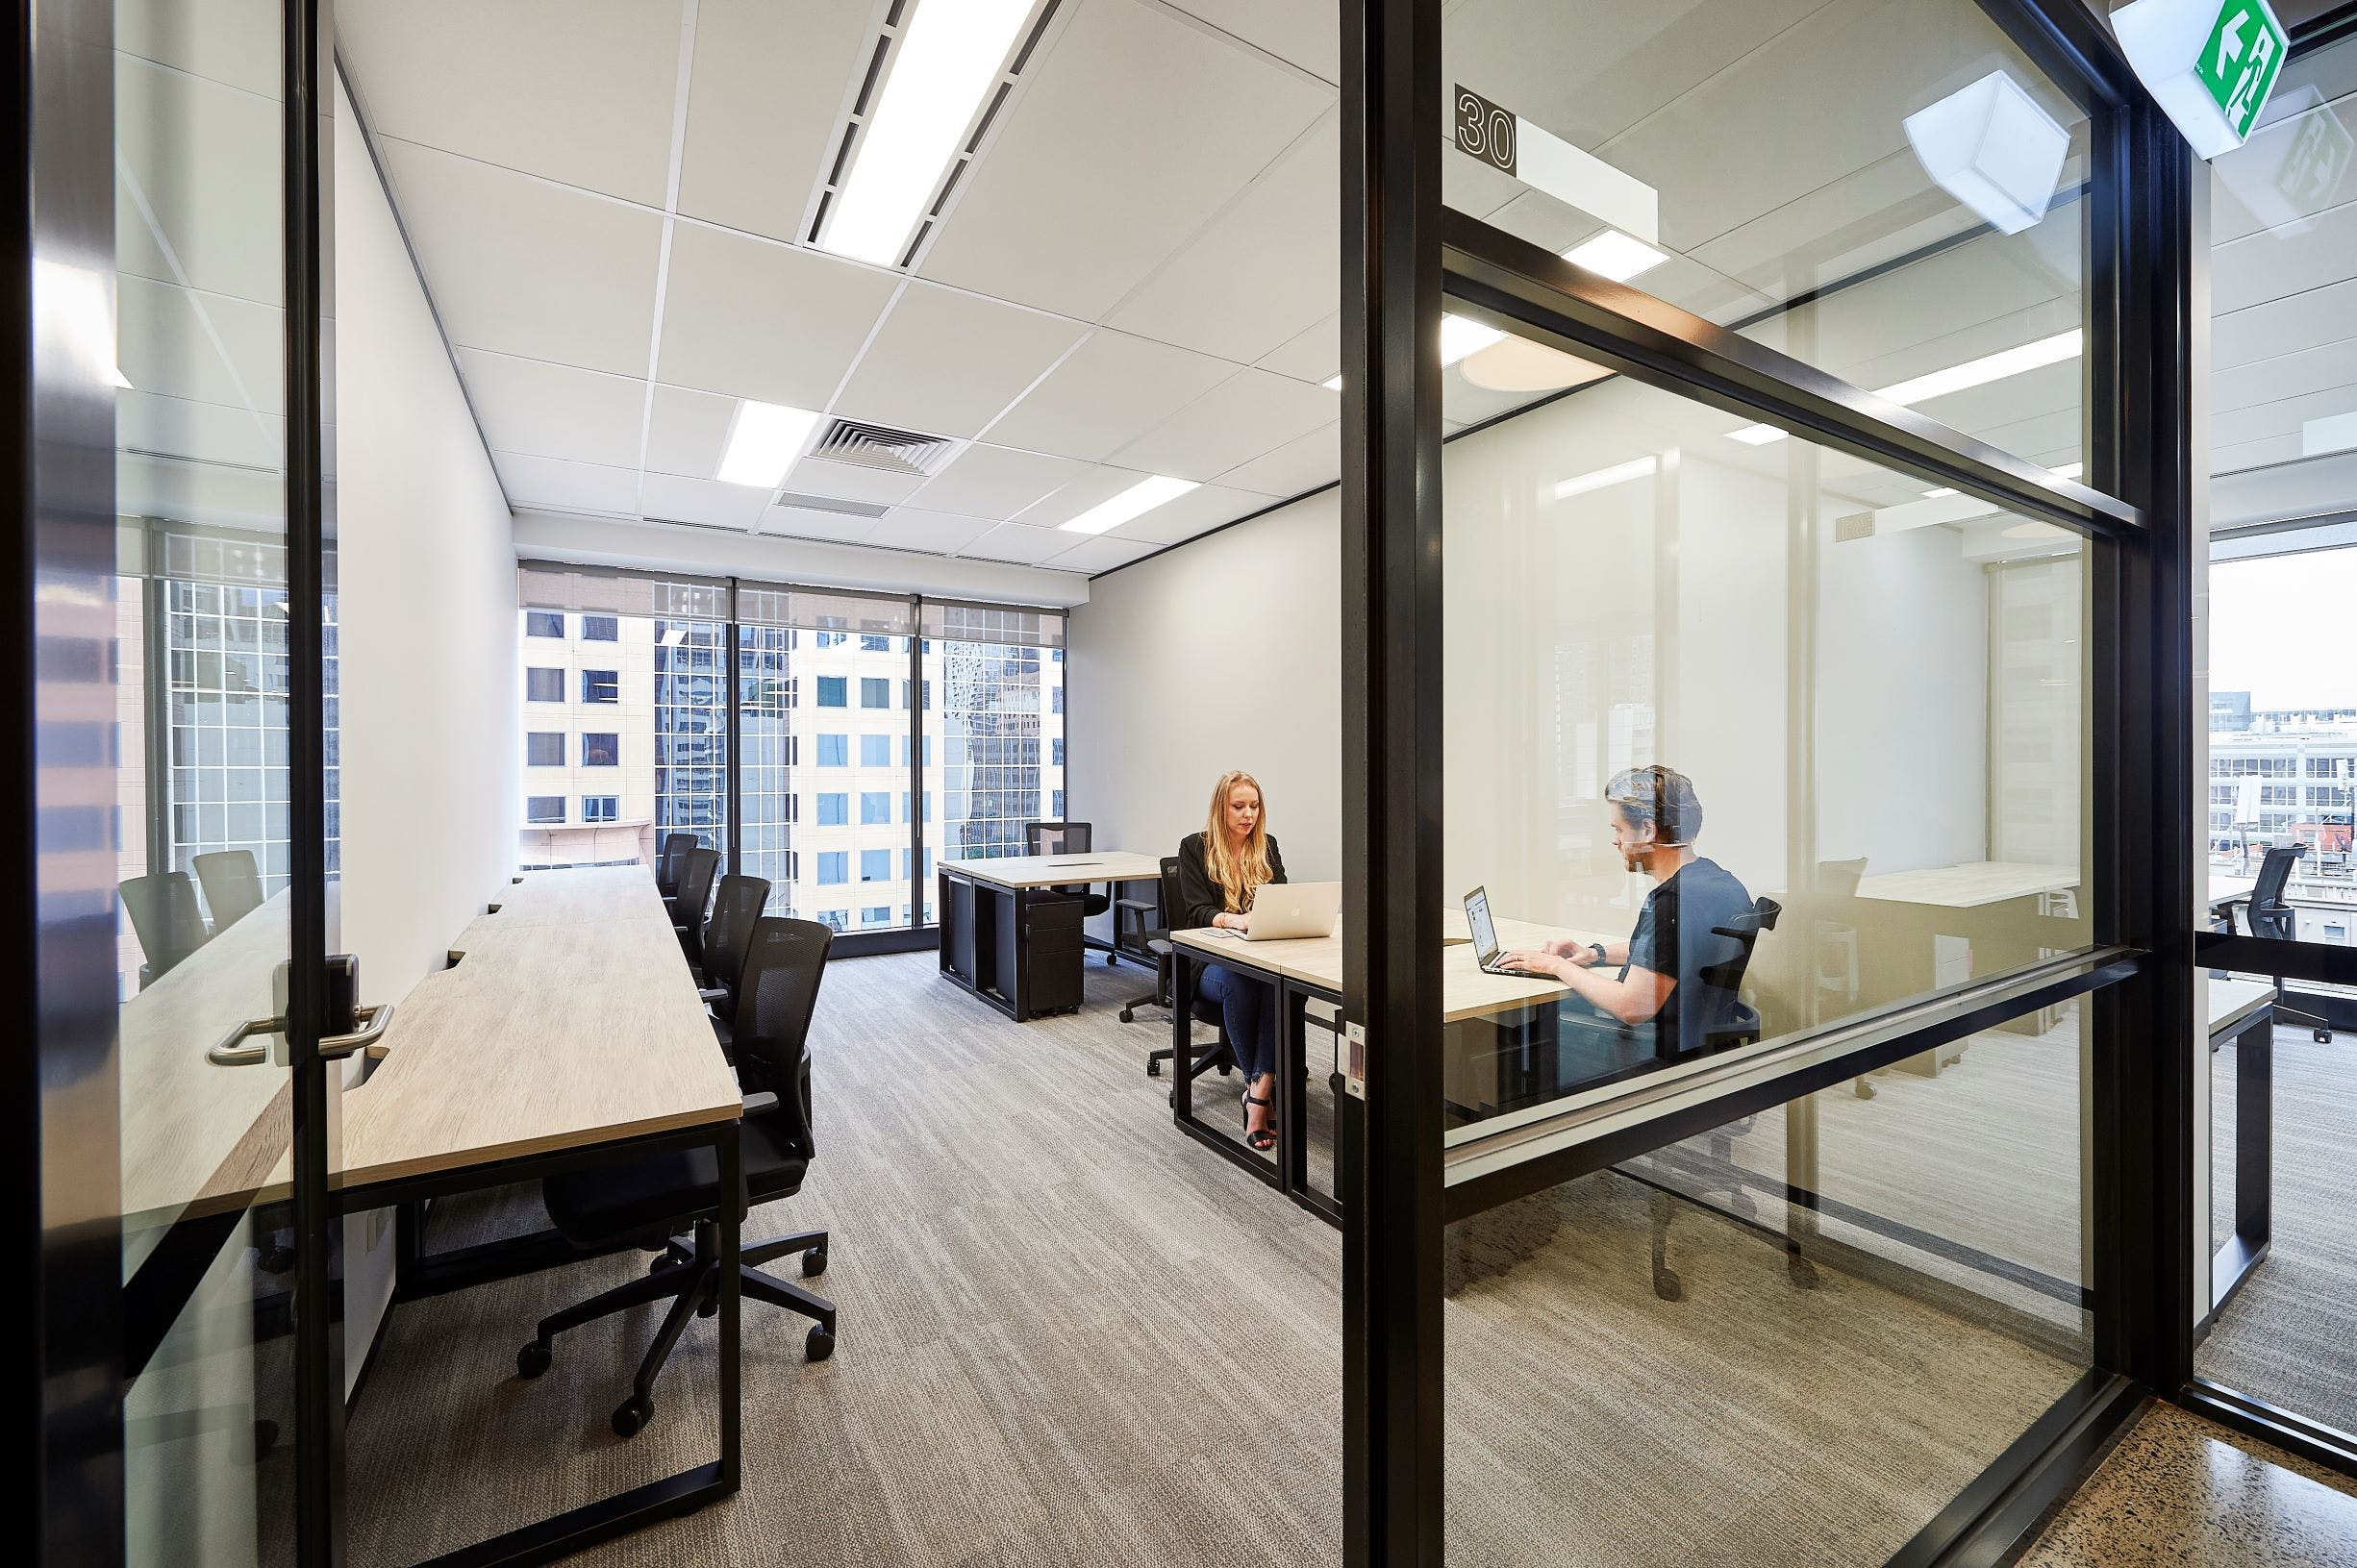 Suite 702, private office at Altitude CoWork, image 1